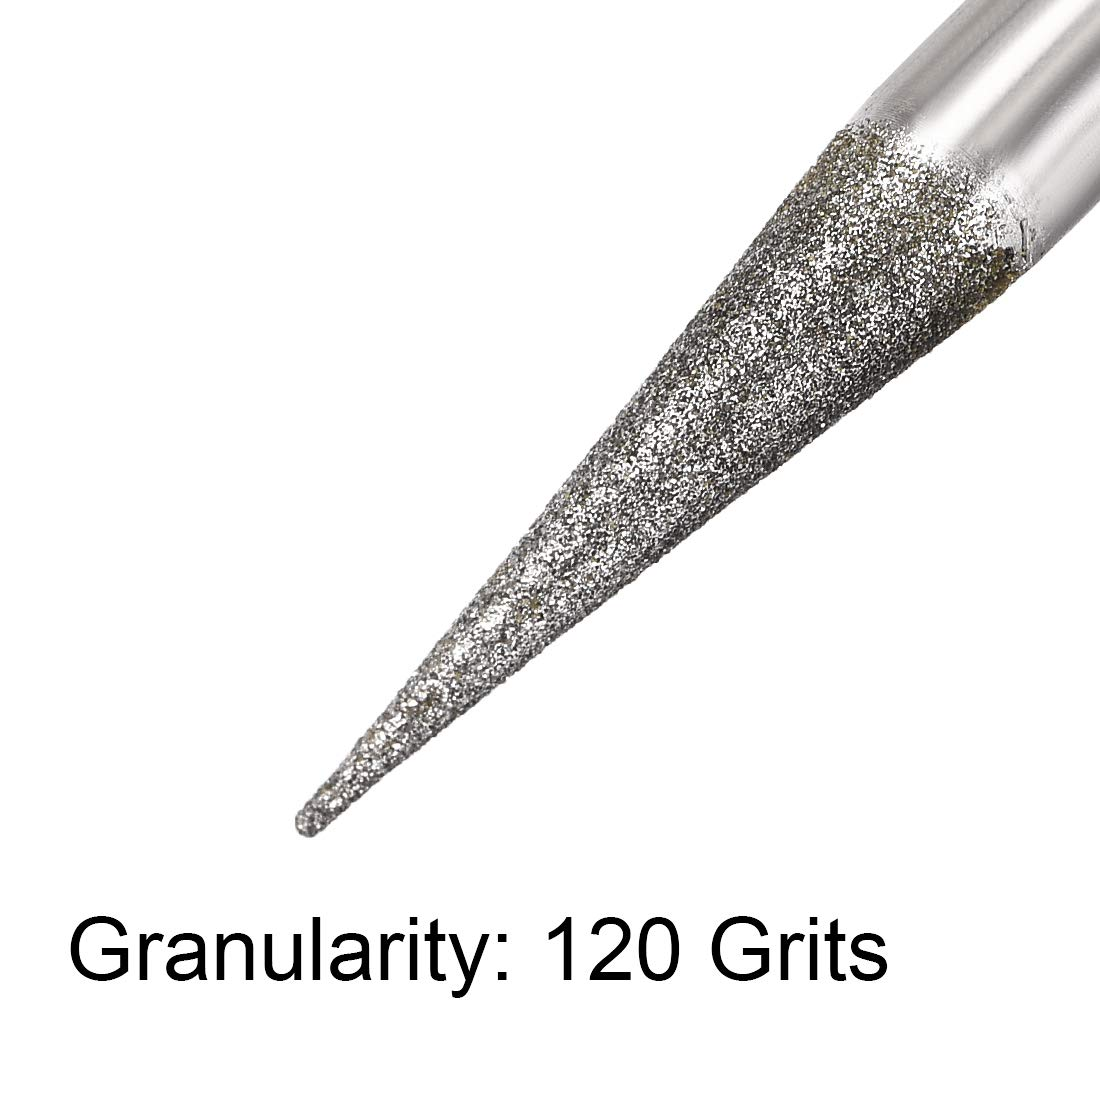 uxcell Diamond Burrs Bits Grinding Drill Carving Rotary Tool for Glass Stone Ceramic 120 Grit 1//4 Shank 6mm Pointed 5 Pcs